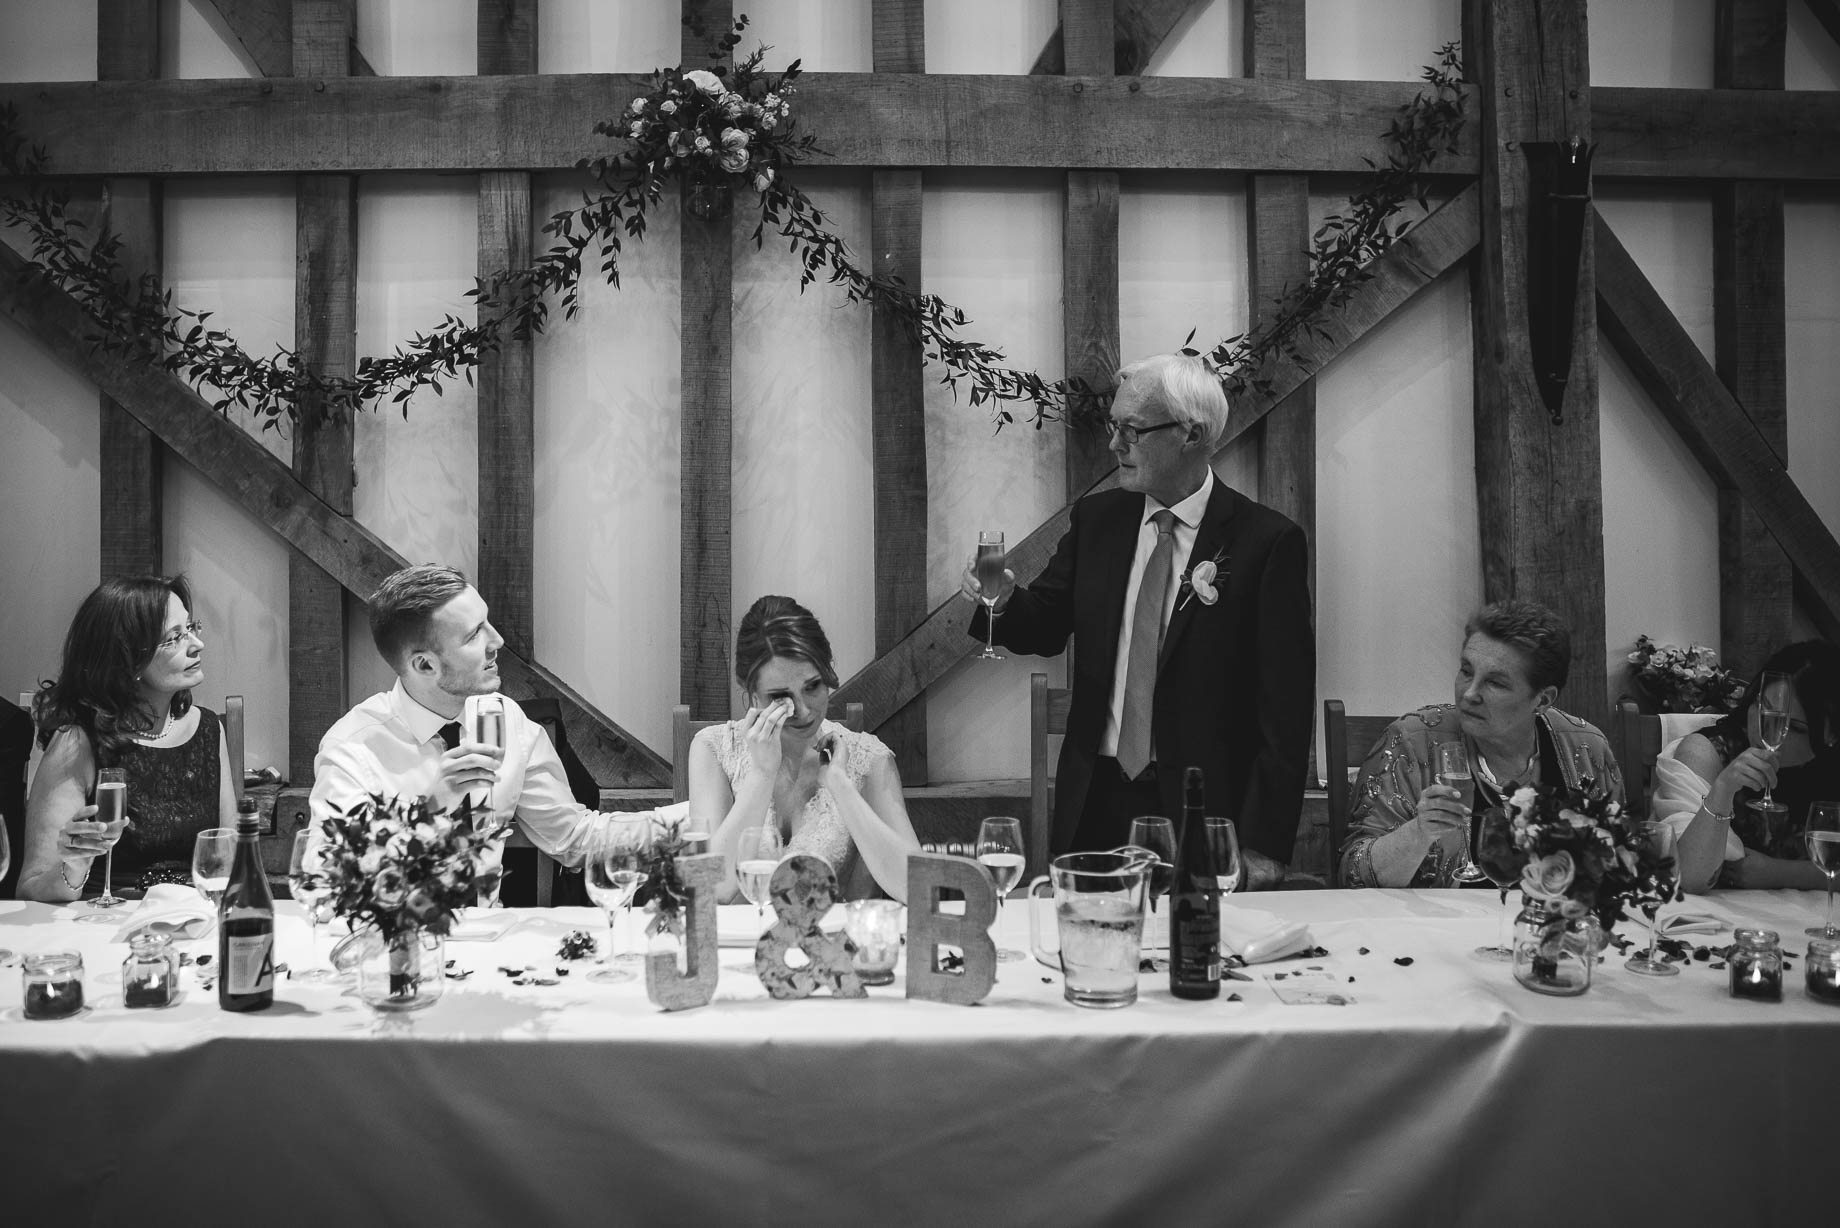 Surrey Wedding Photography by Guy Collier - Becca and James (133 of 145)